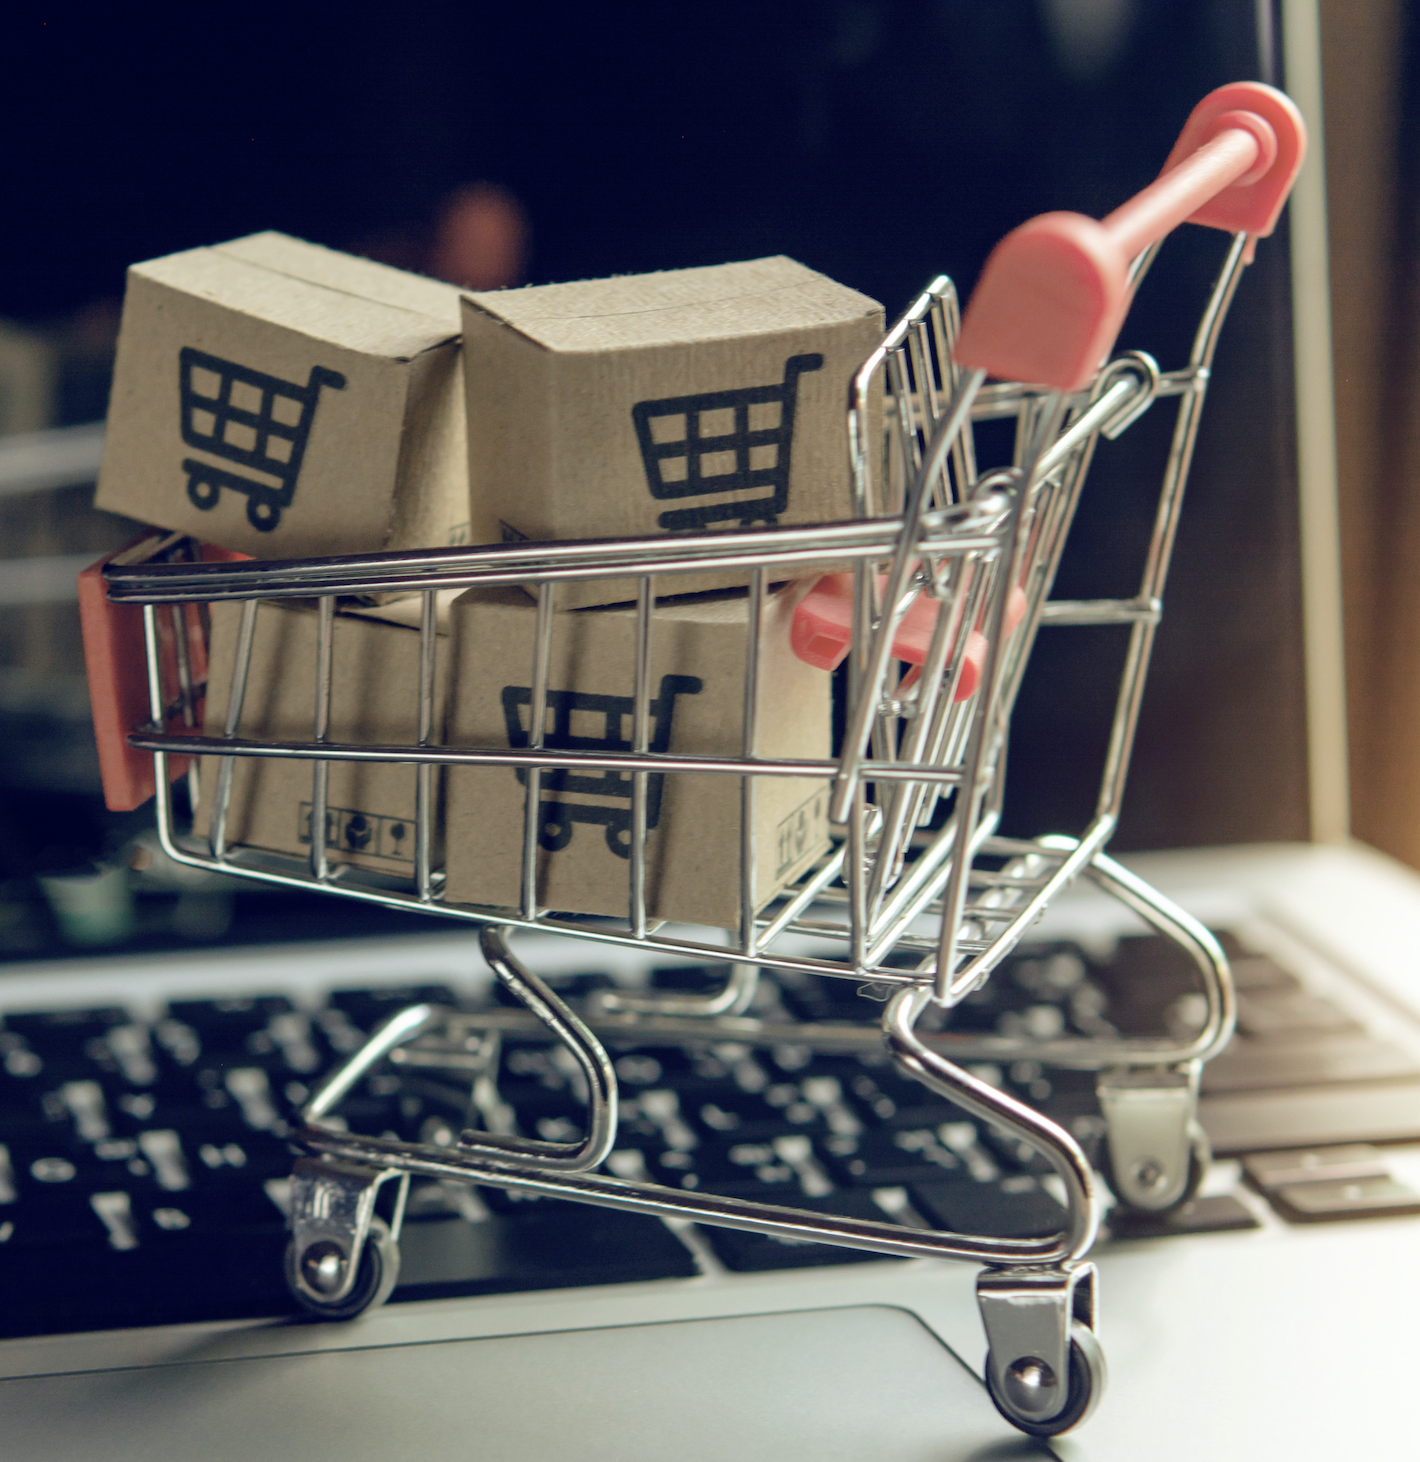 This week's top stories in supply chain and logistics: online-shopping boom delivers haul for van makers, UPS & FedEx fees on heavy packages to hit consumers and merchants, Amazon's van-buying spree delivers a gift to the auto industry, Amazon shows why it's investing so much In logistics, and JB Hunter builds 'big and bulky' last-mile capacity with acquisition. Read our Friday Five to learn more here!